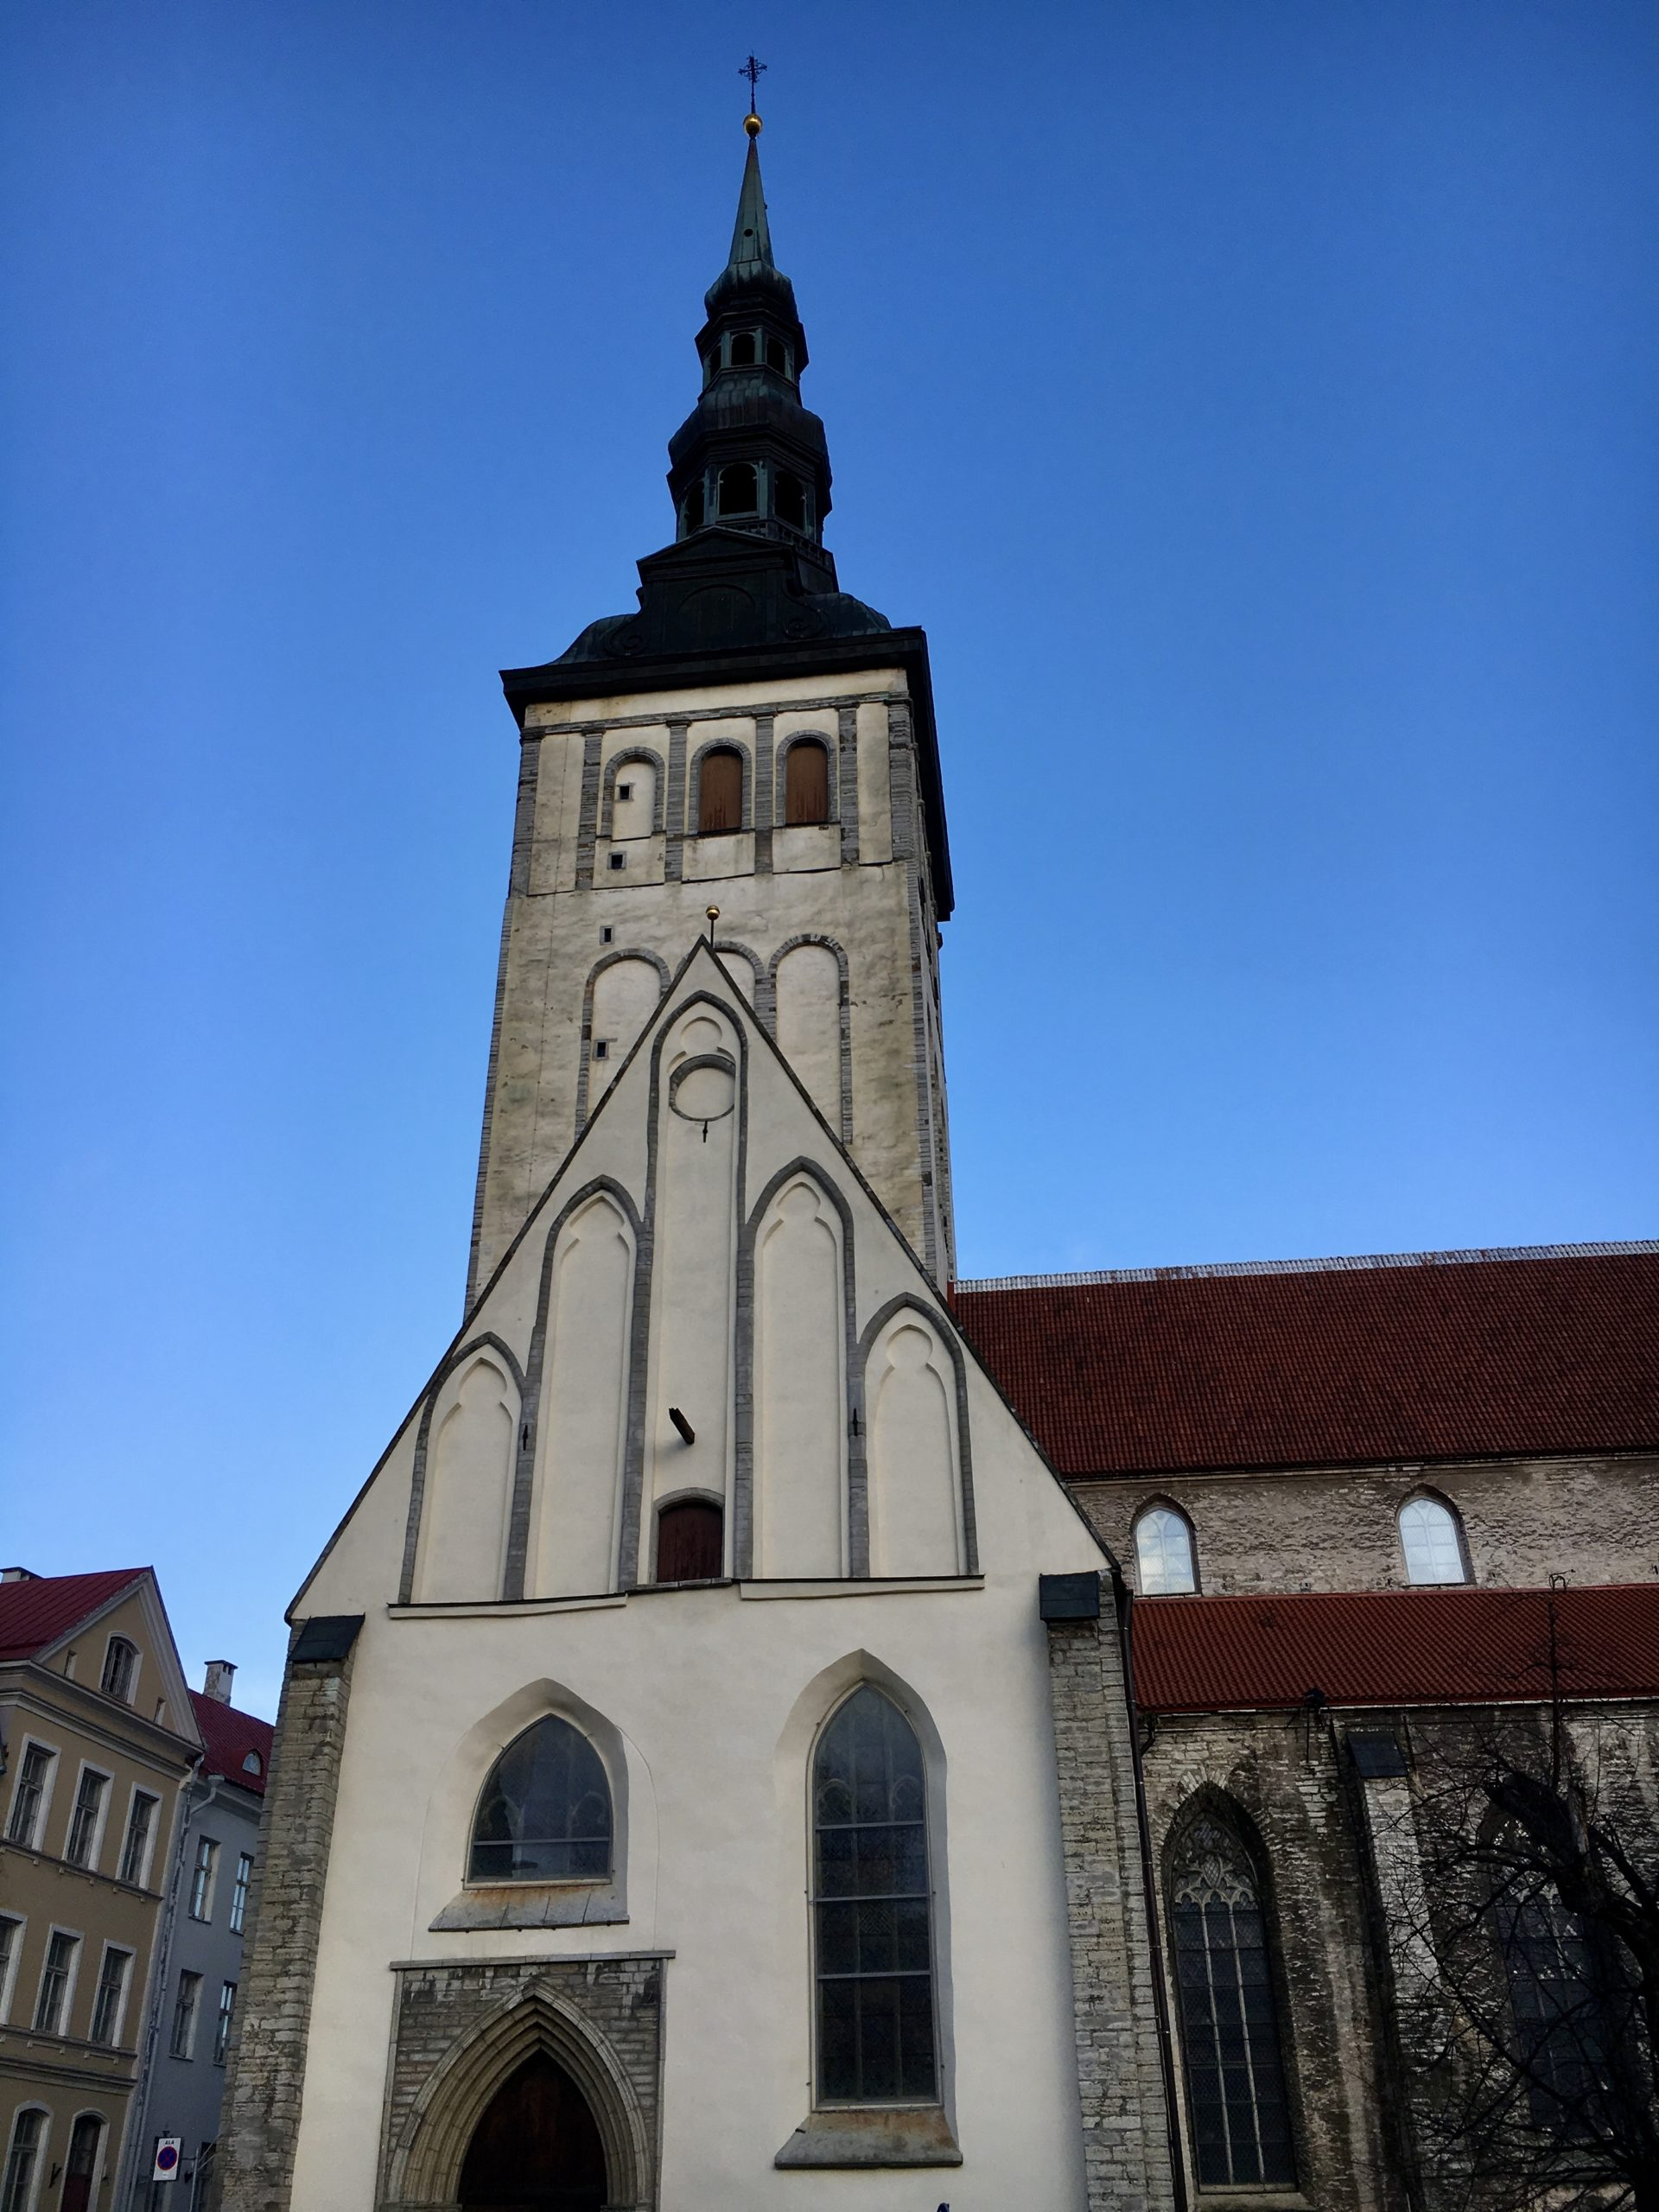 Tallinn Christmas Market – Trip to the Middle Ages